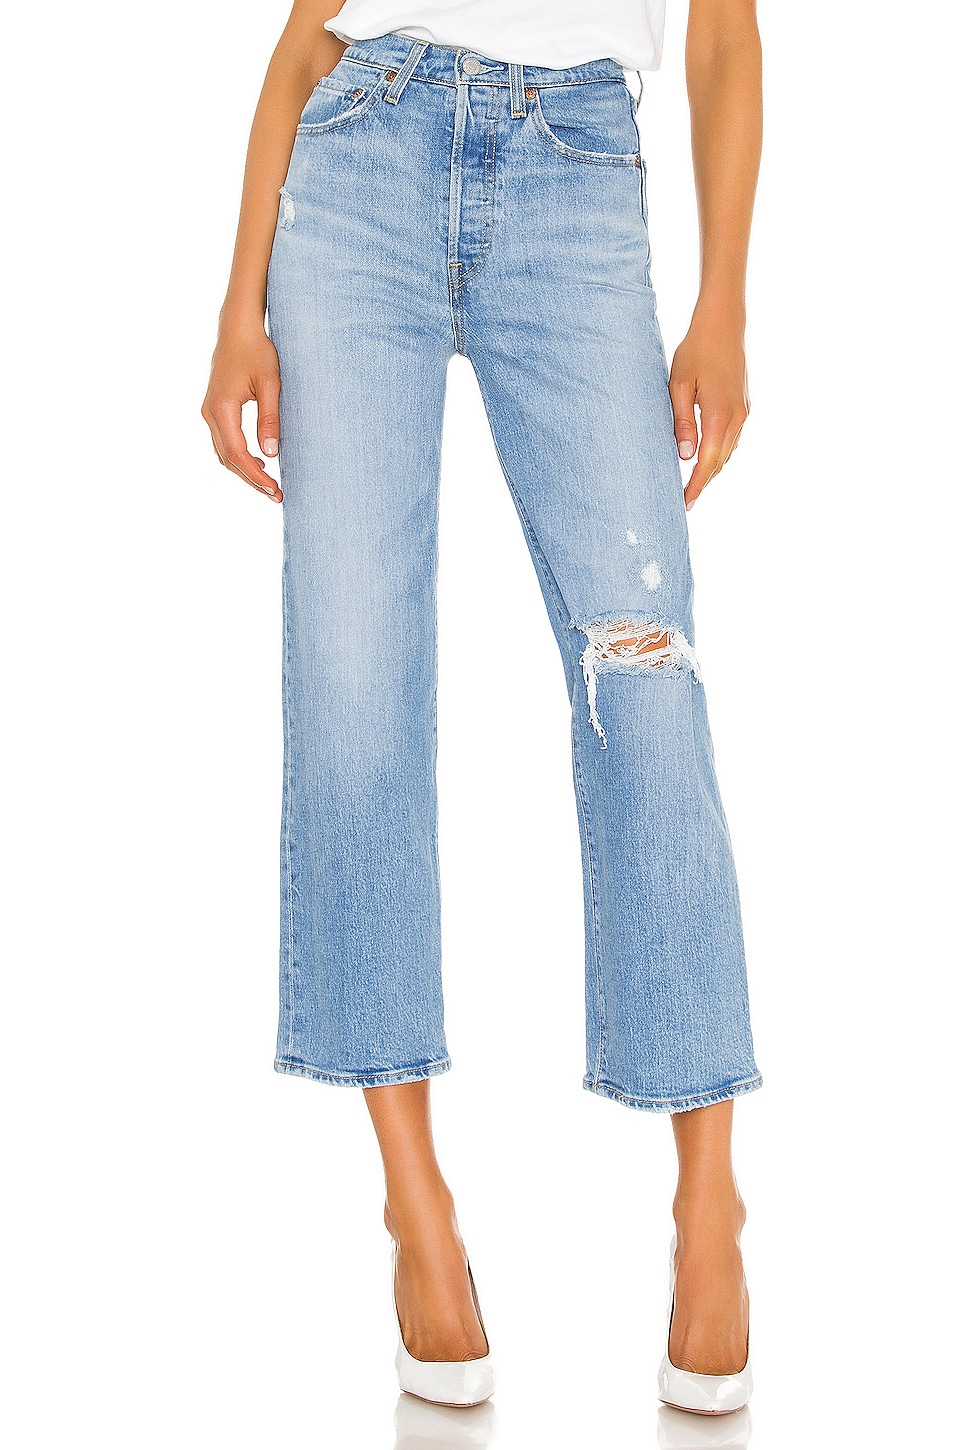 Ribcage Straight Ankle             LEVI'S                                                                                                       CA$ 139.34 1